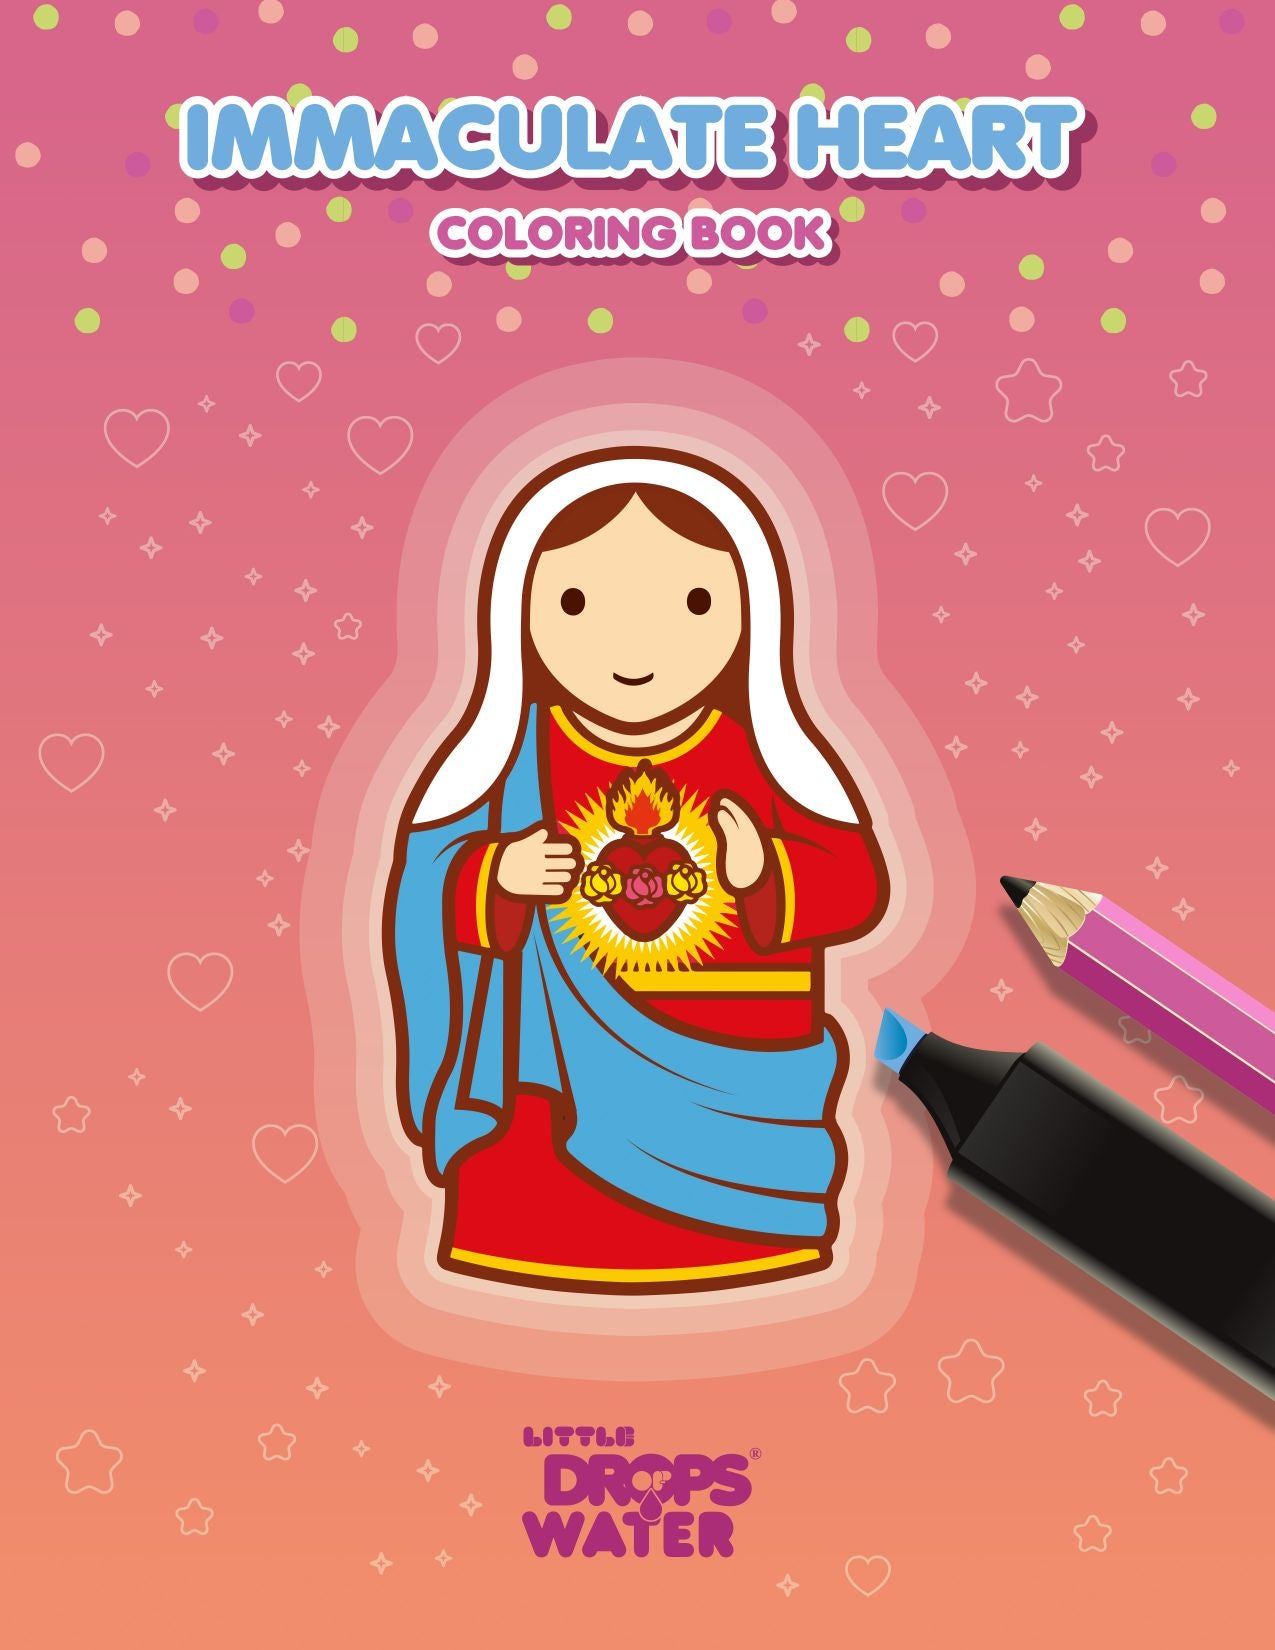 Immaculate Heart colouring e-book